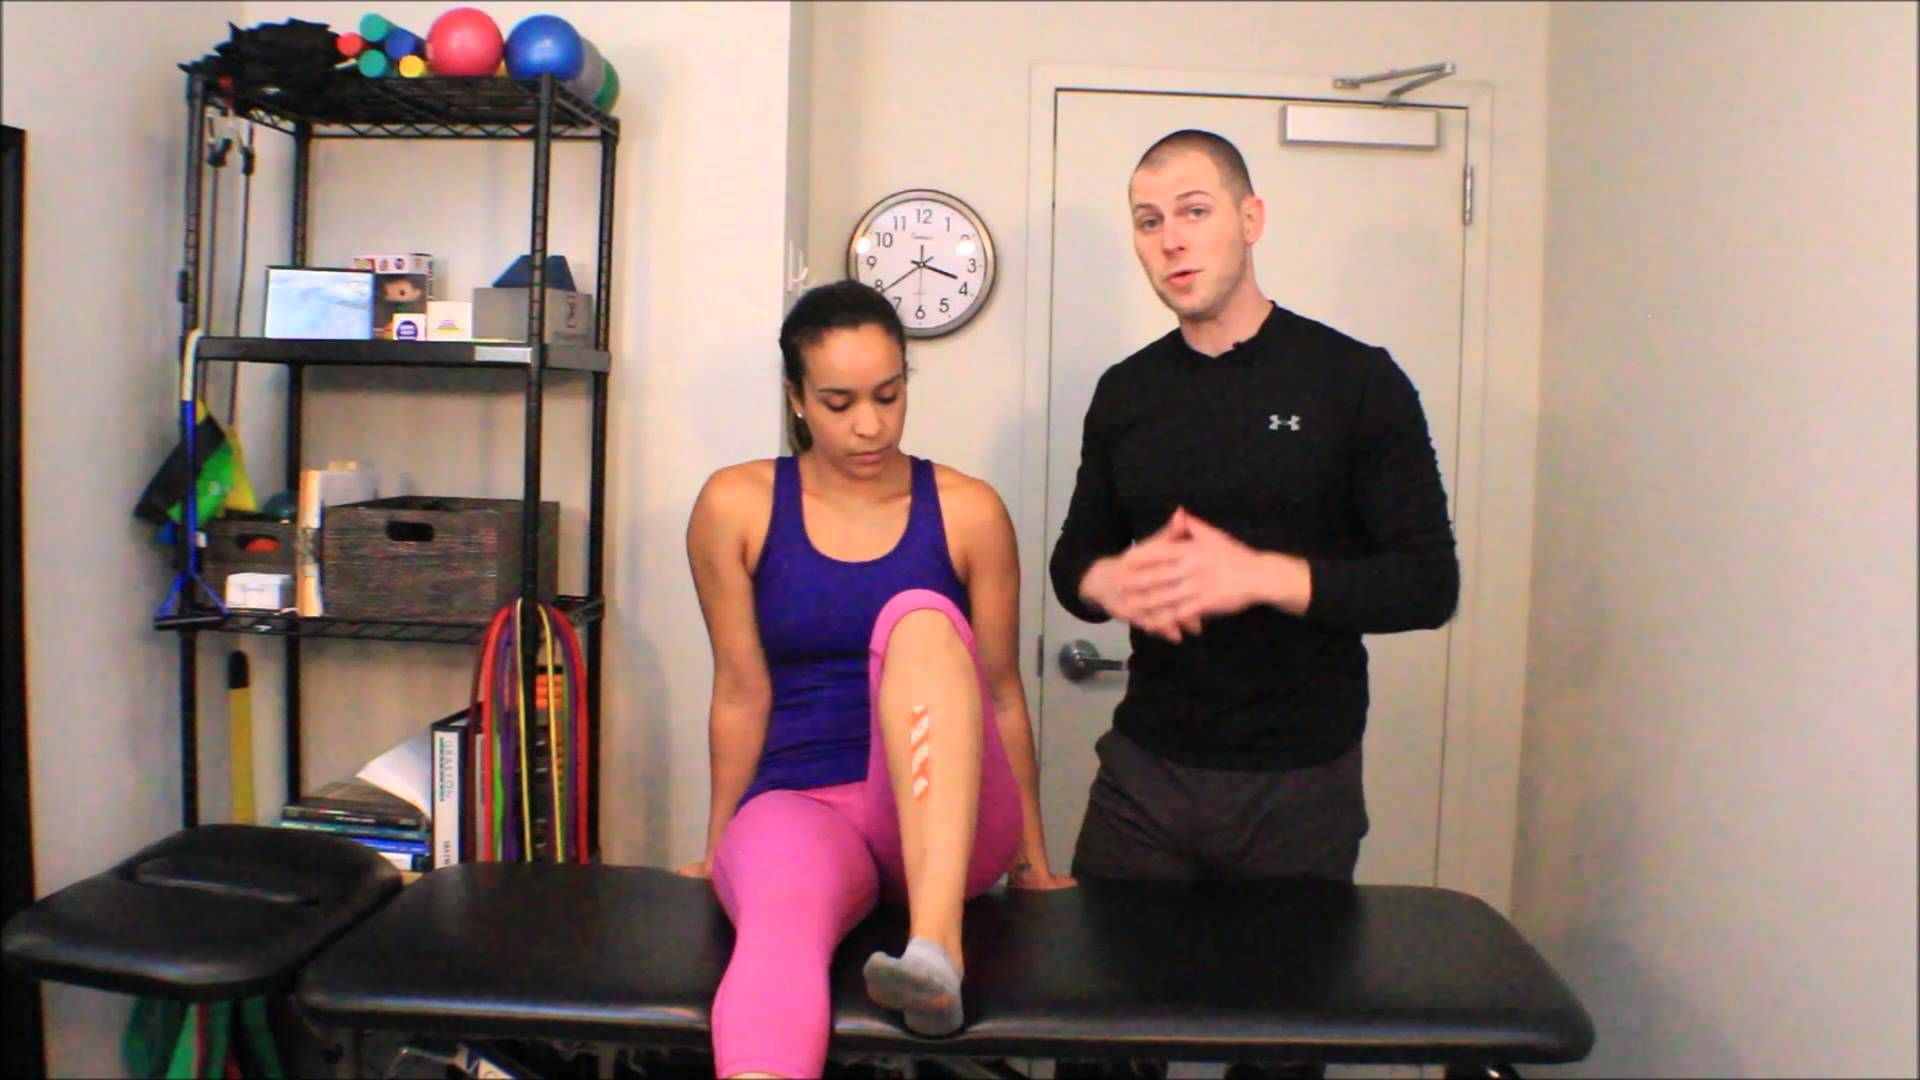 Tibial Internal Rotator Manual Muscle Testing (MMT) for an Active Popula...